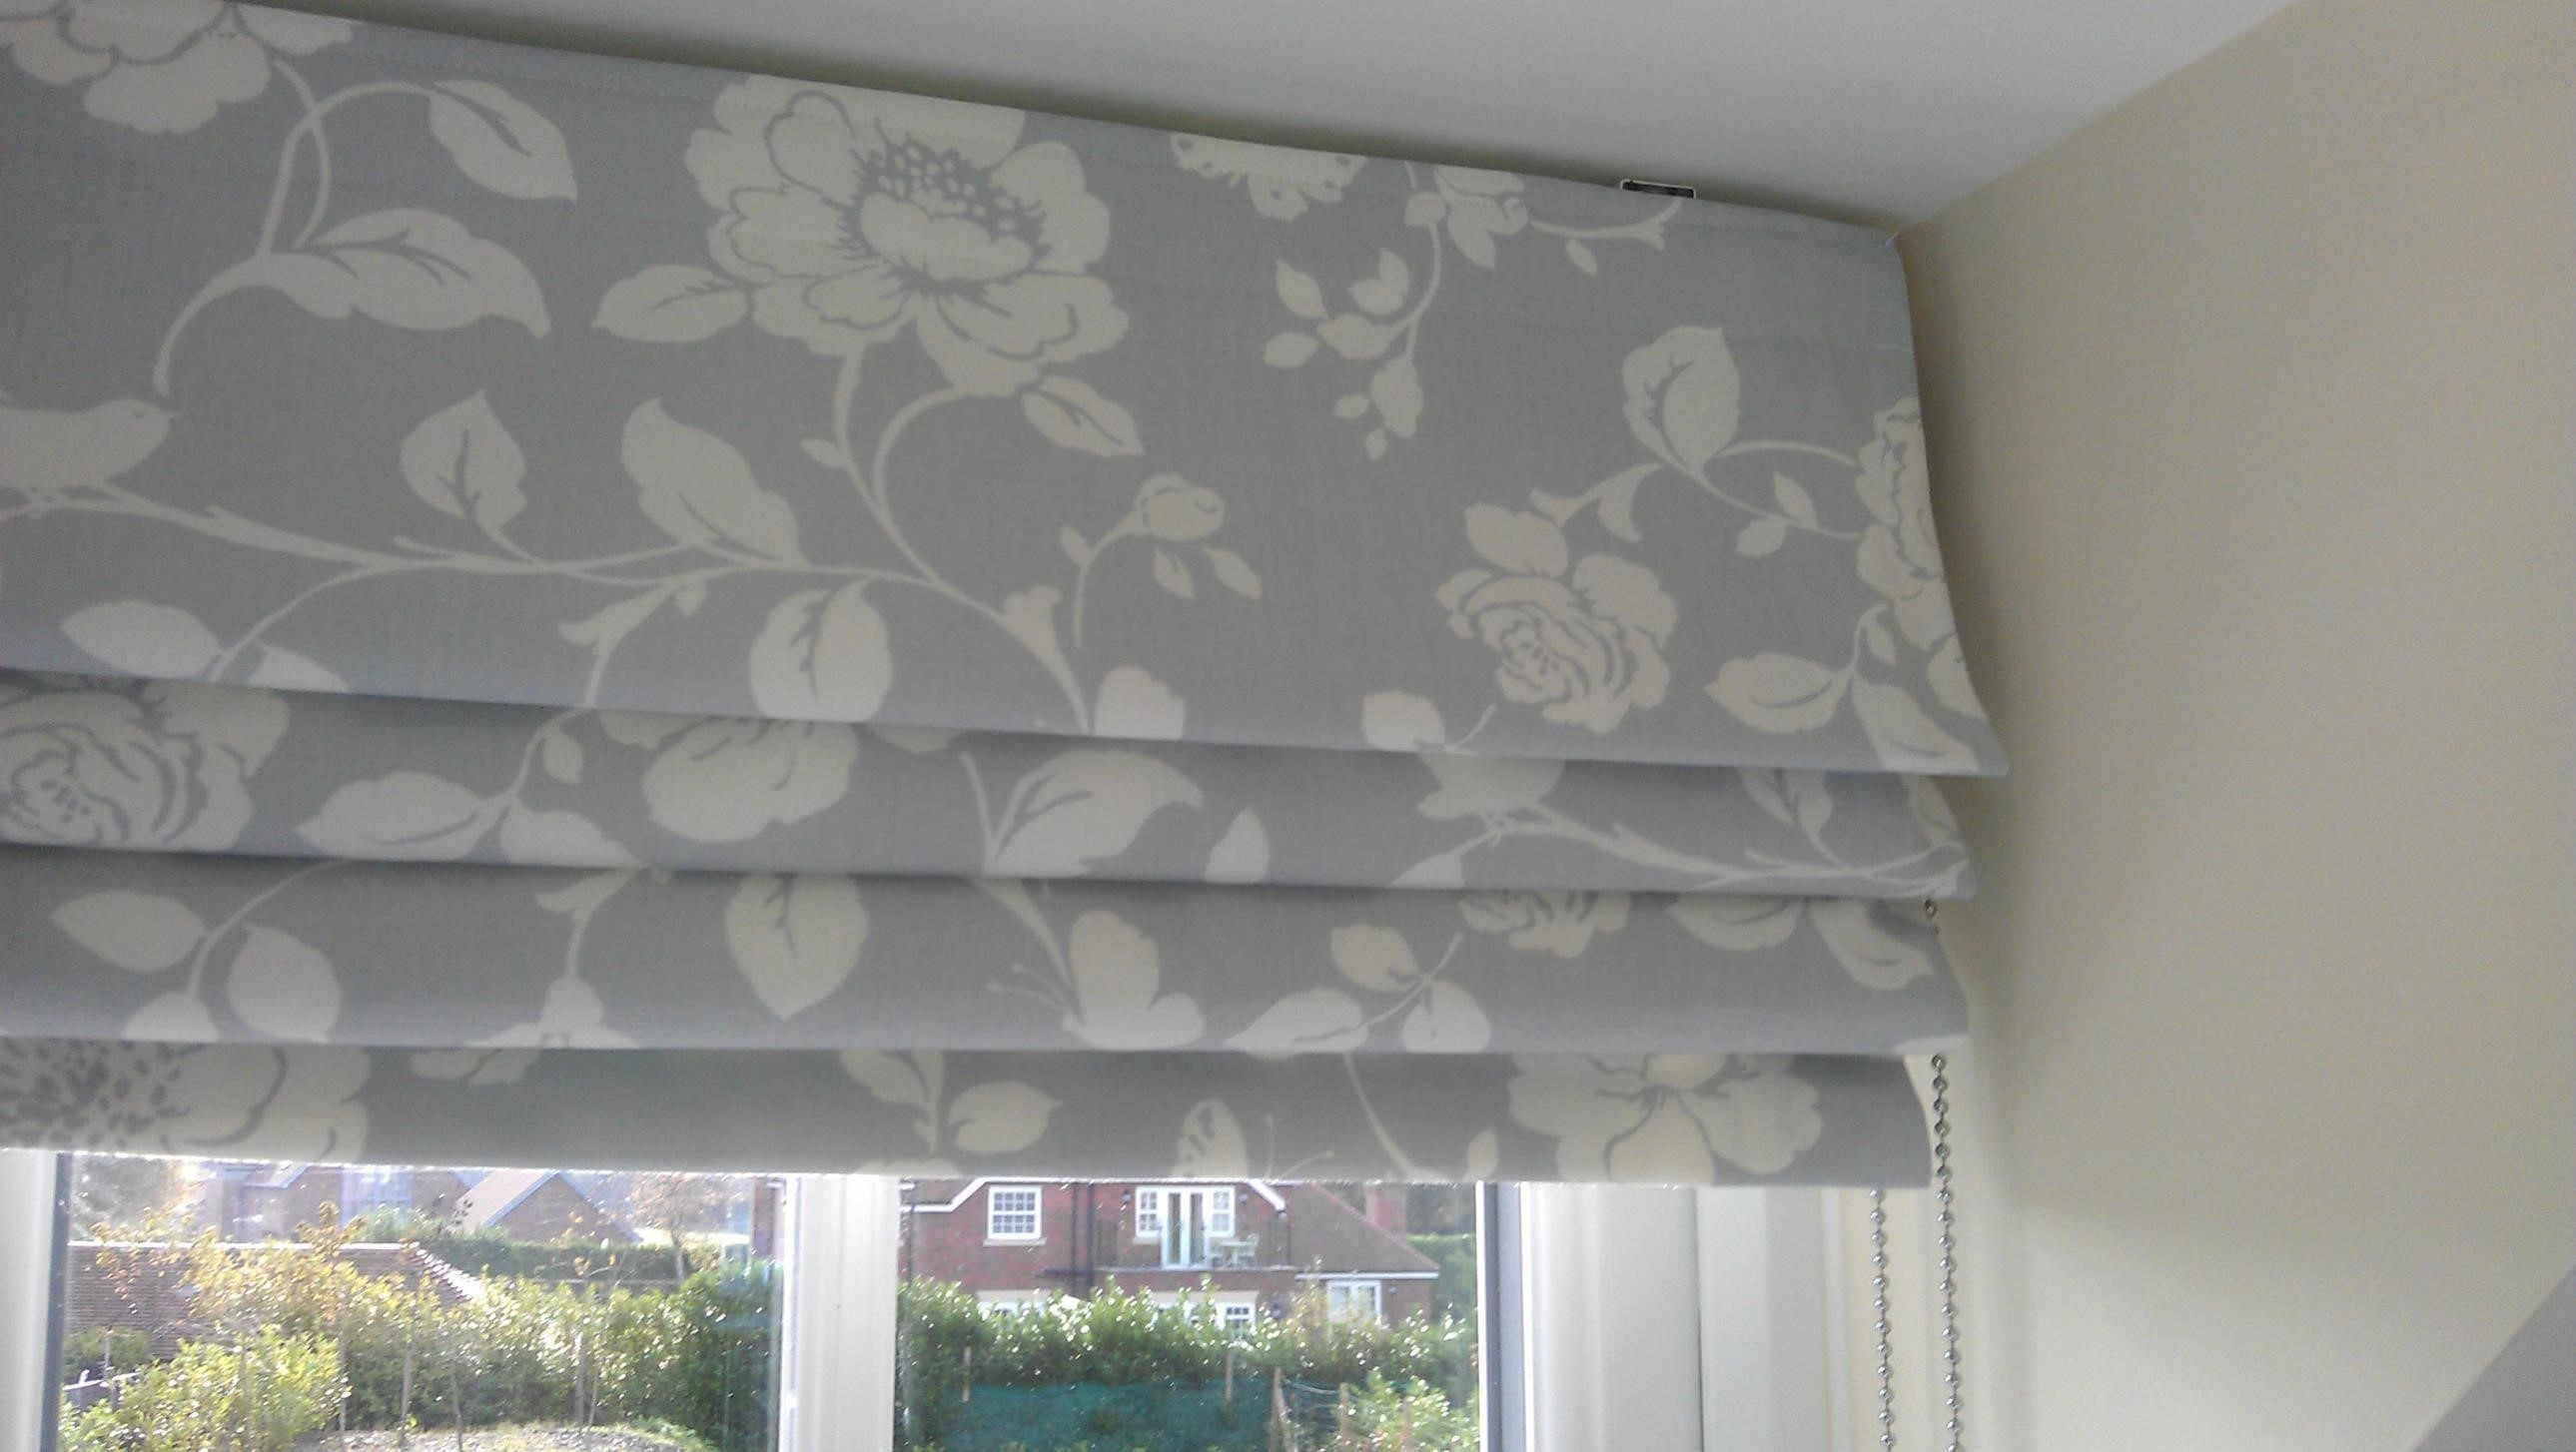 Curtains Blackout Roller S Doors Treatments Blackout Corner Pertaining To Fitted Curtains And Blinds (View 15 of 15)